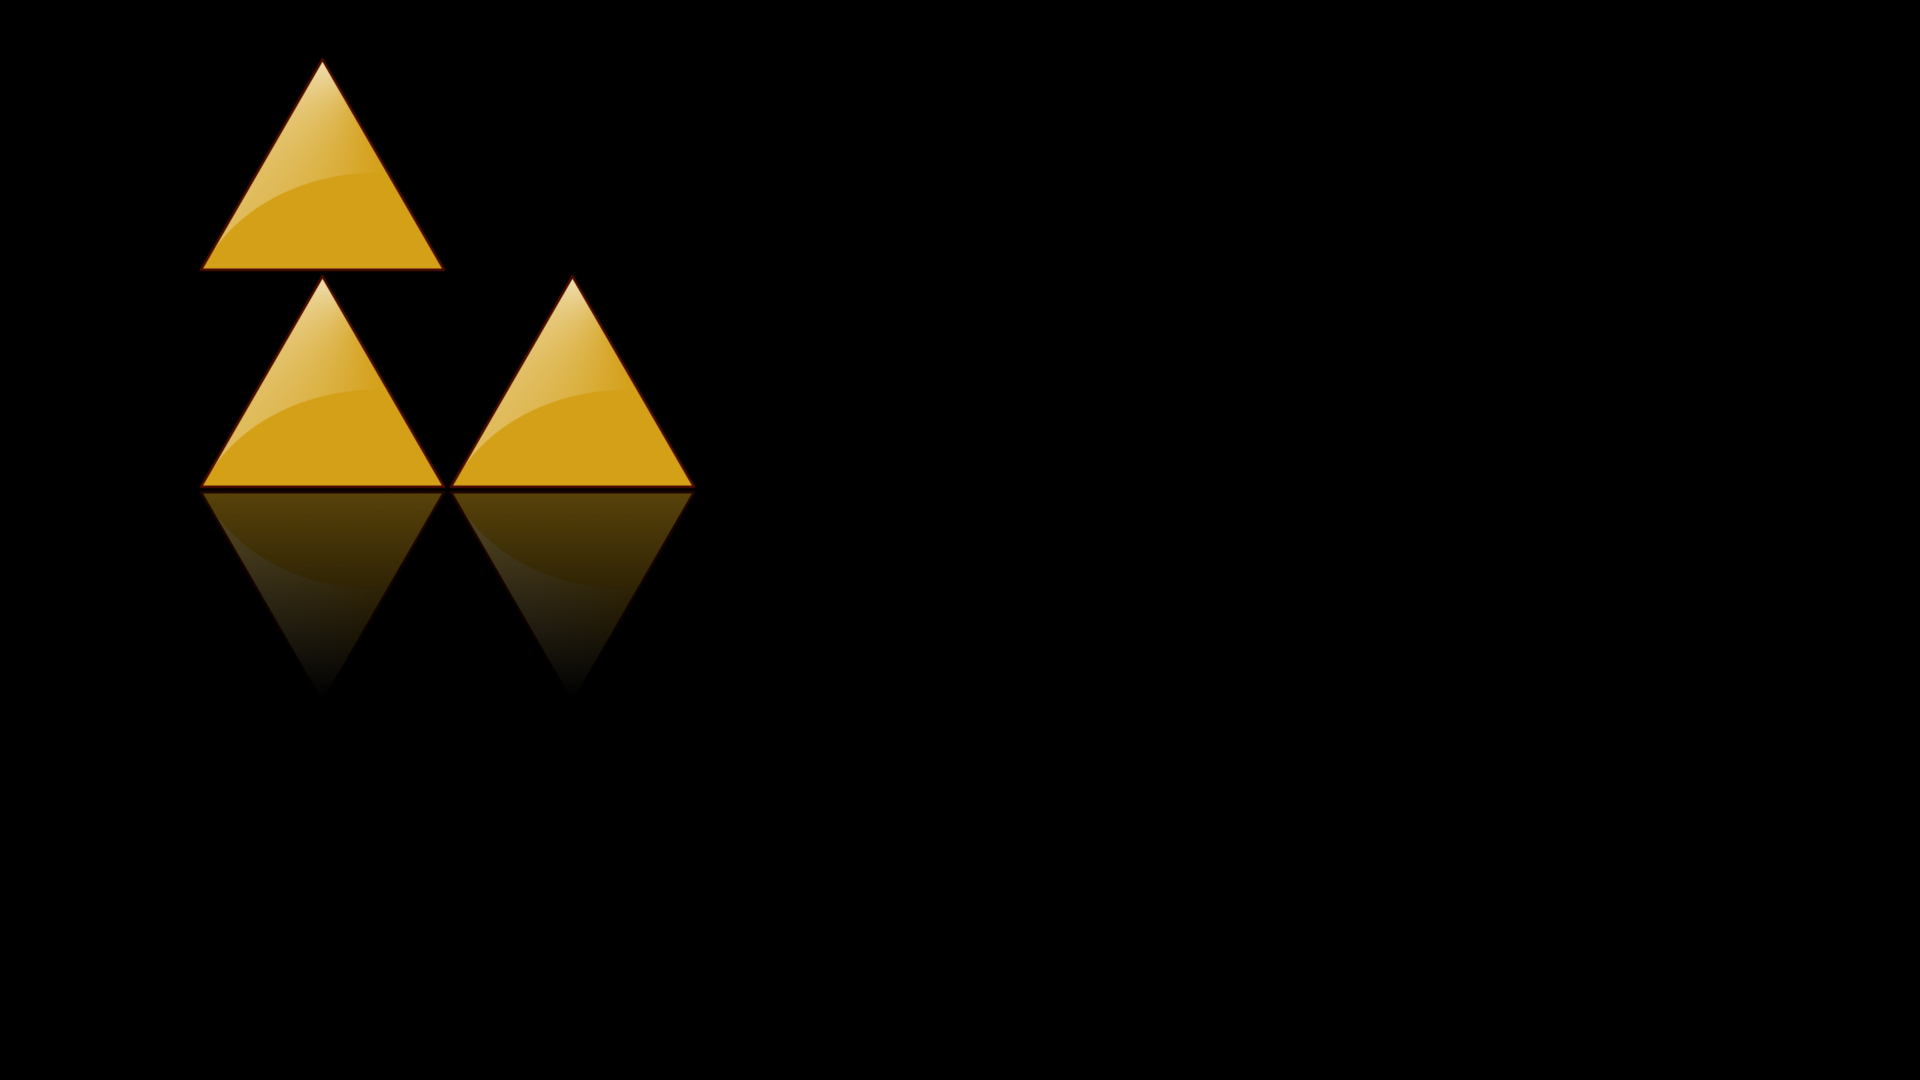 triforce HD Wallpaper